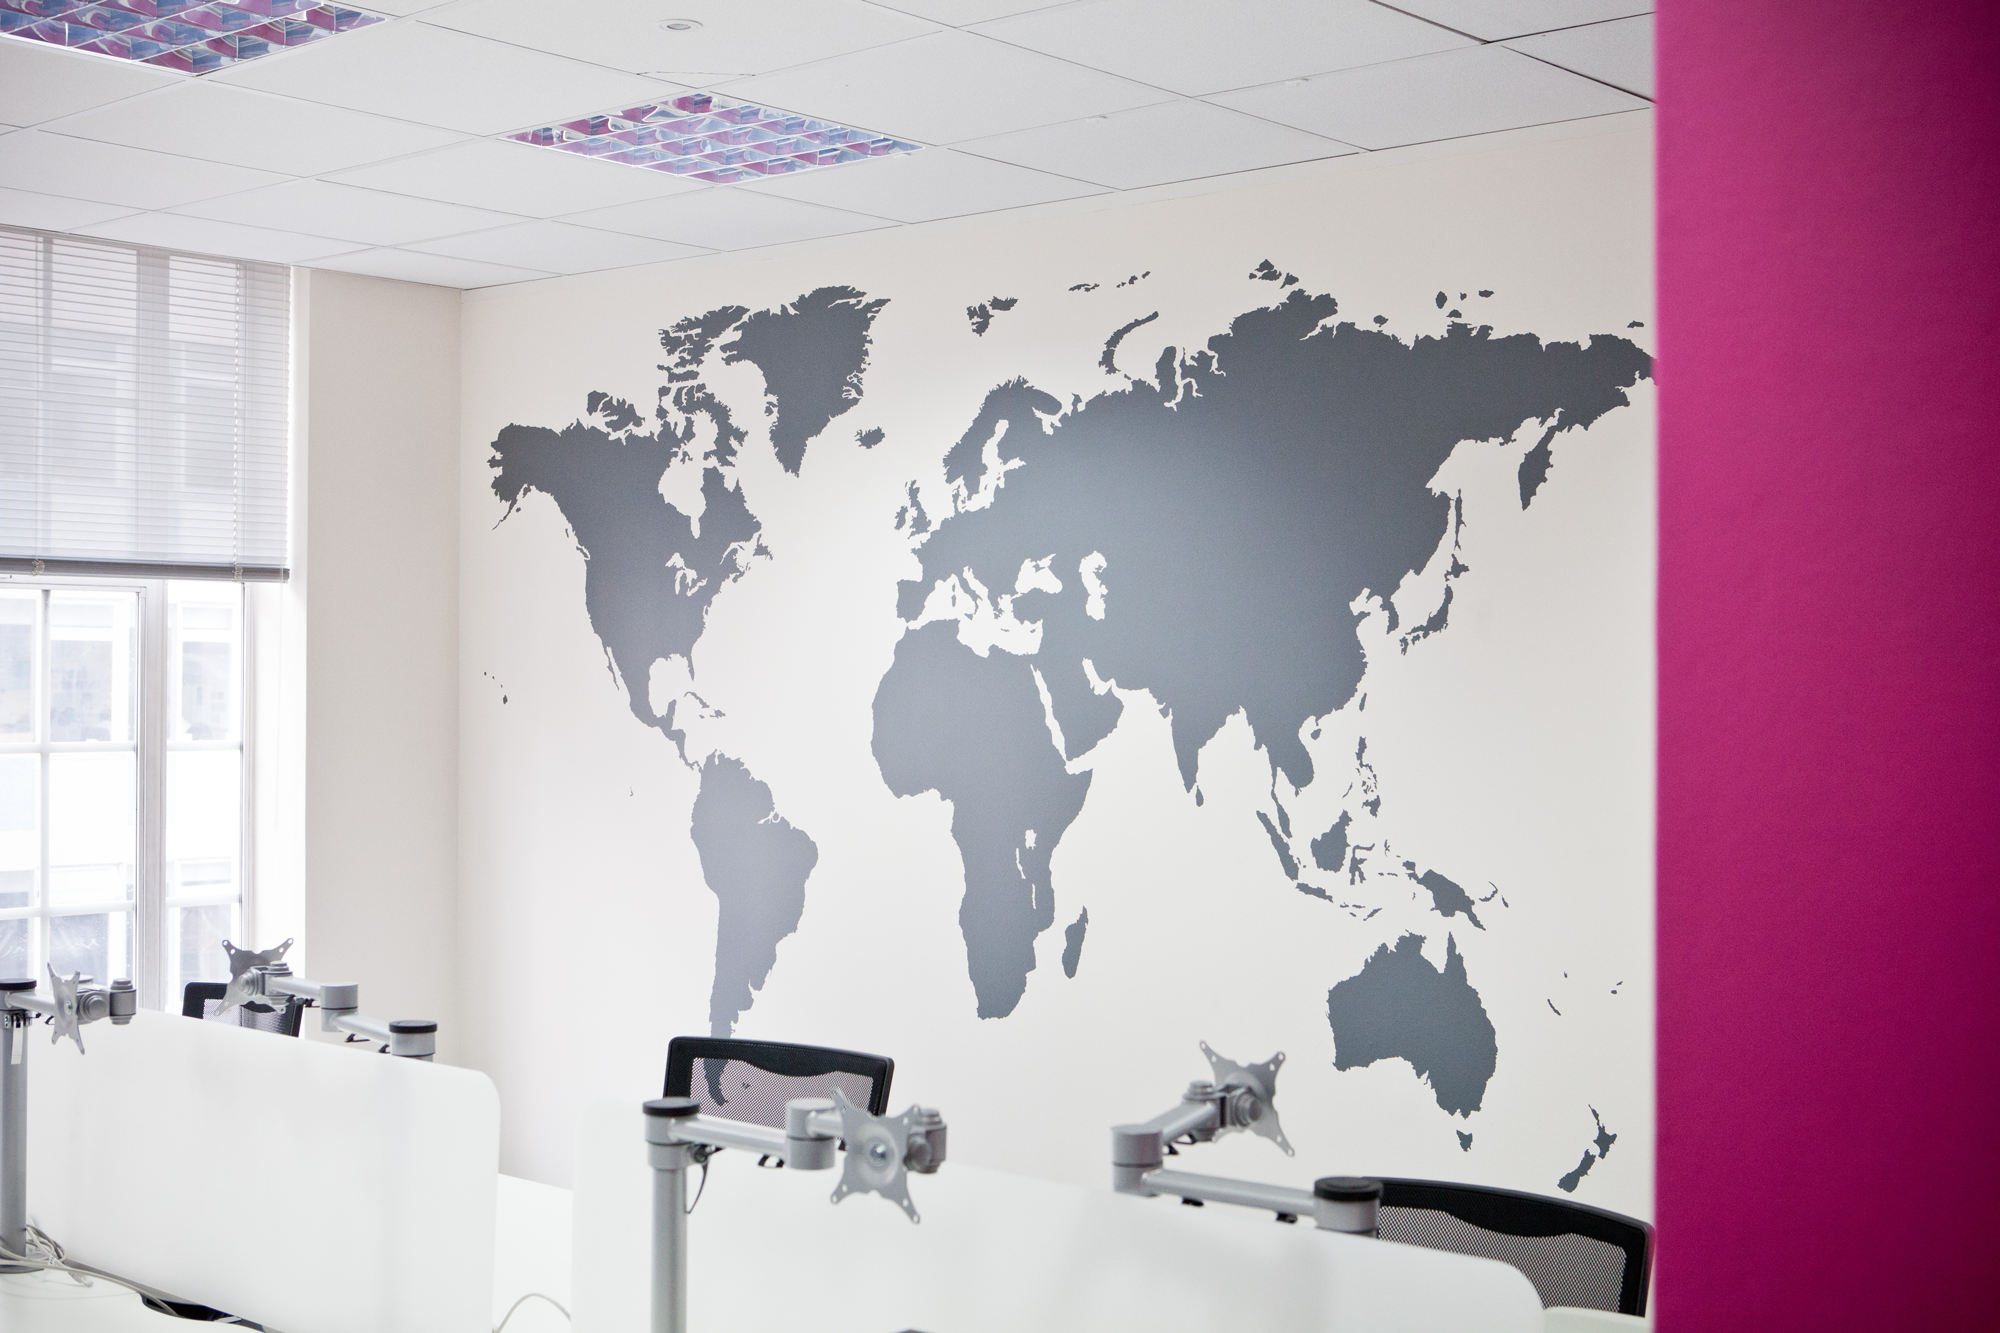 World map wall art in office in london silhouette of globe vinyl world map wall art in office in london silhouette of globe vinyl wall sticker for gumiabroncs Choice Image